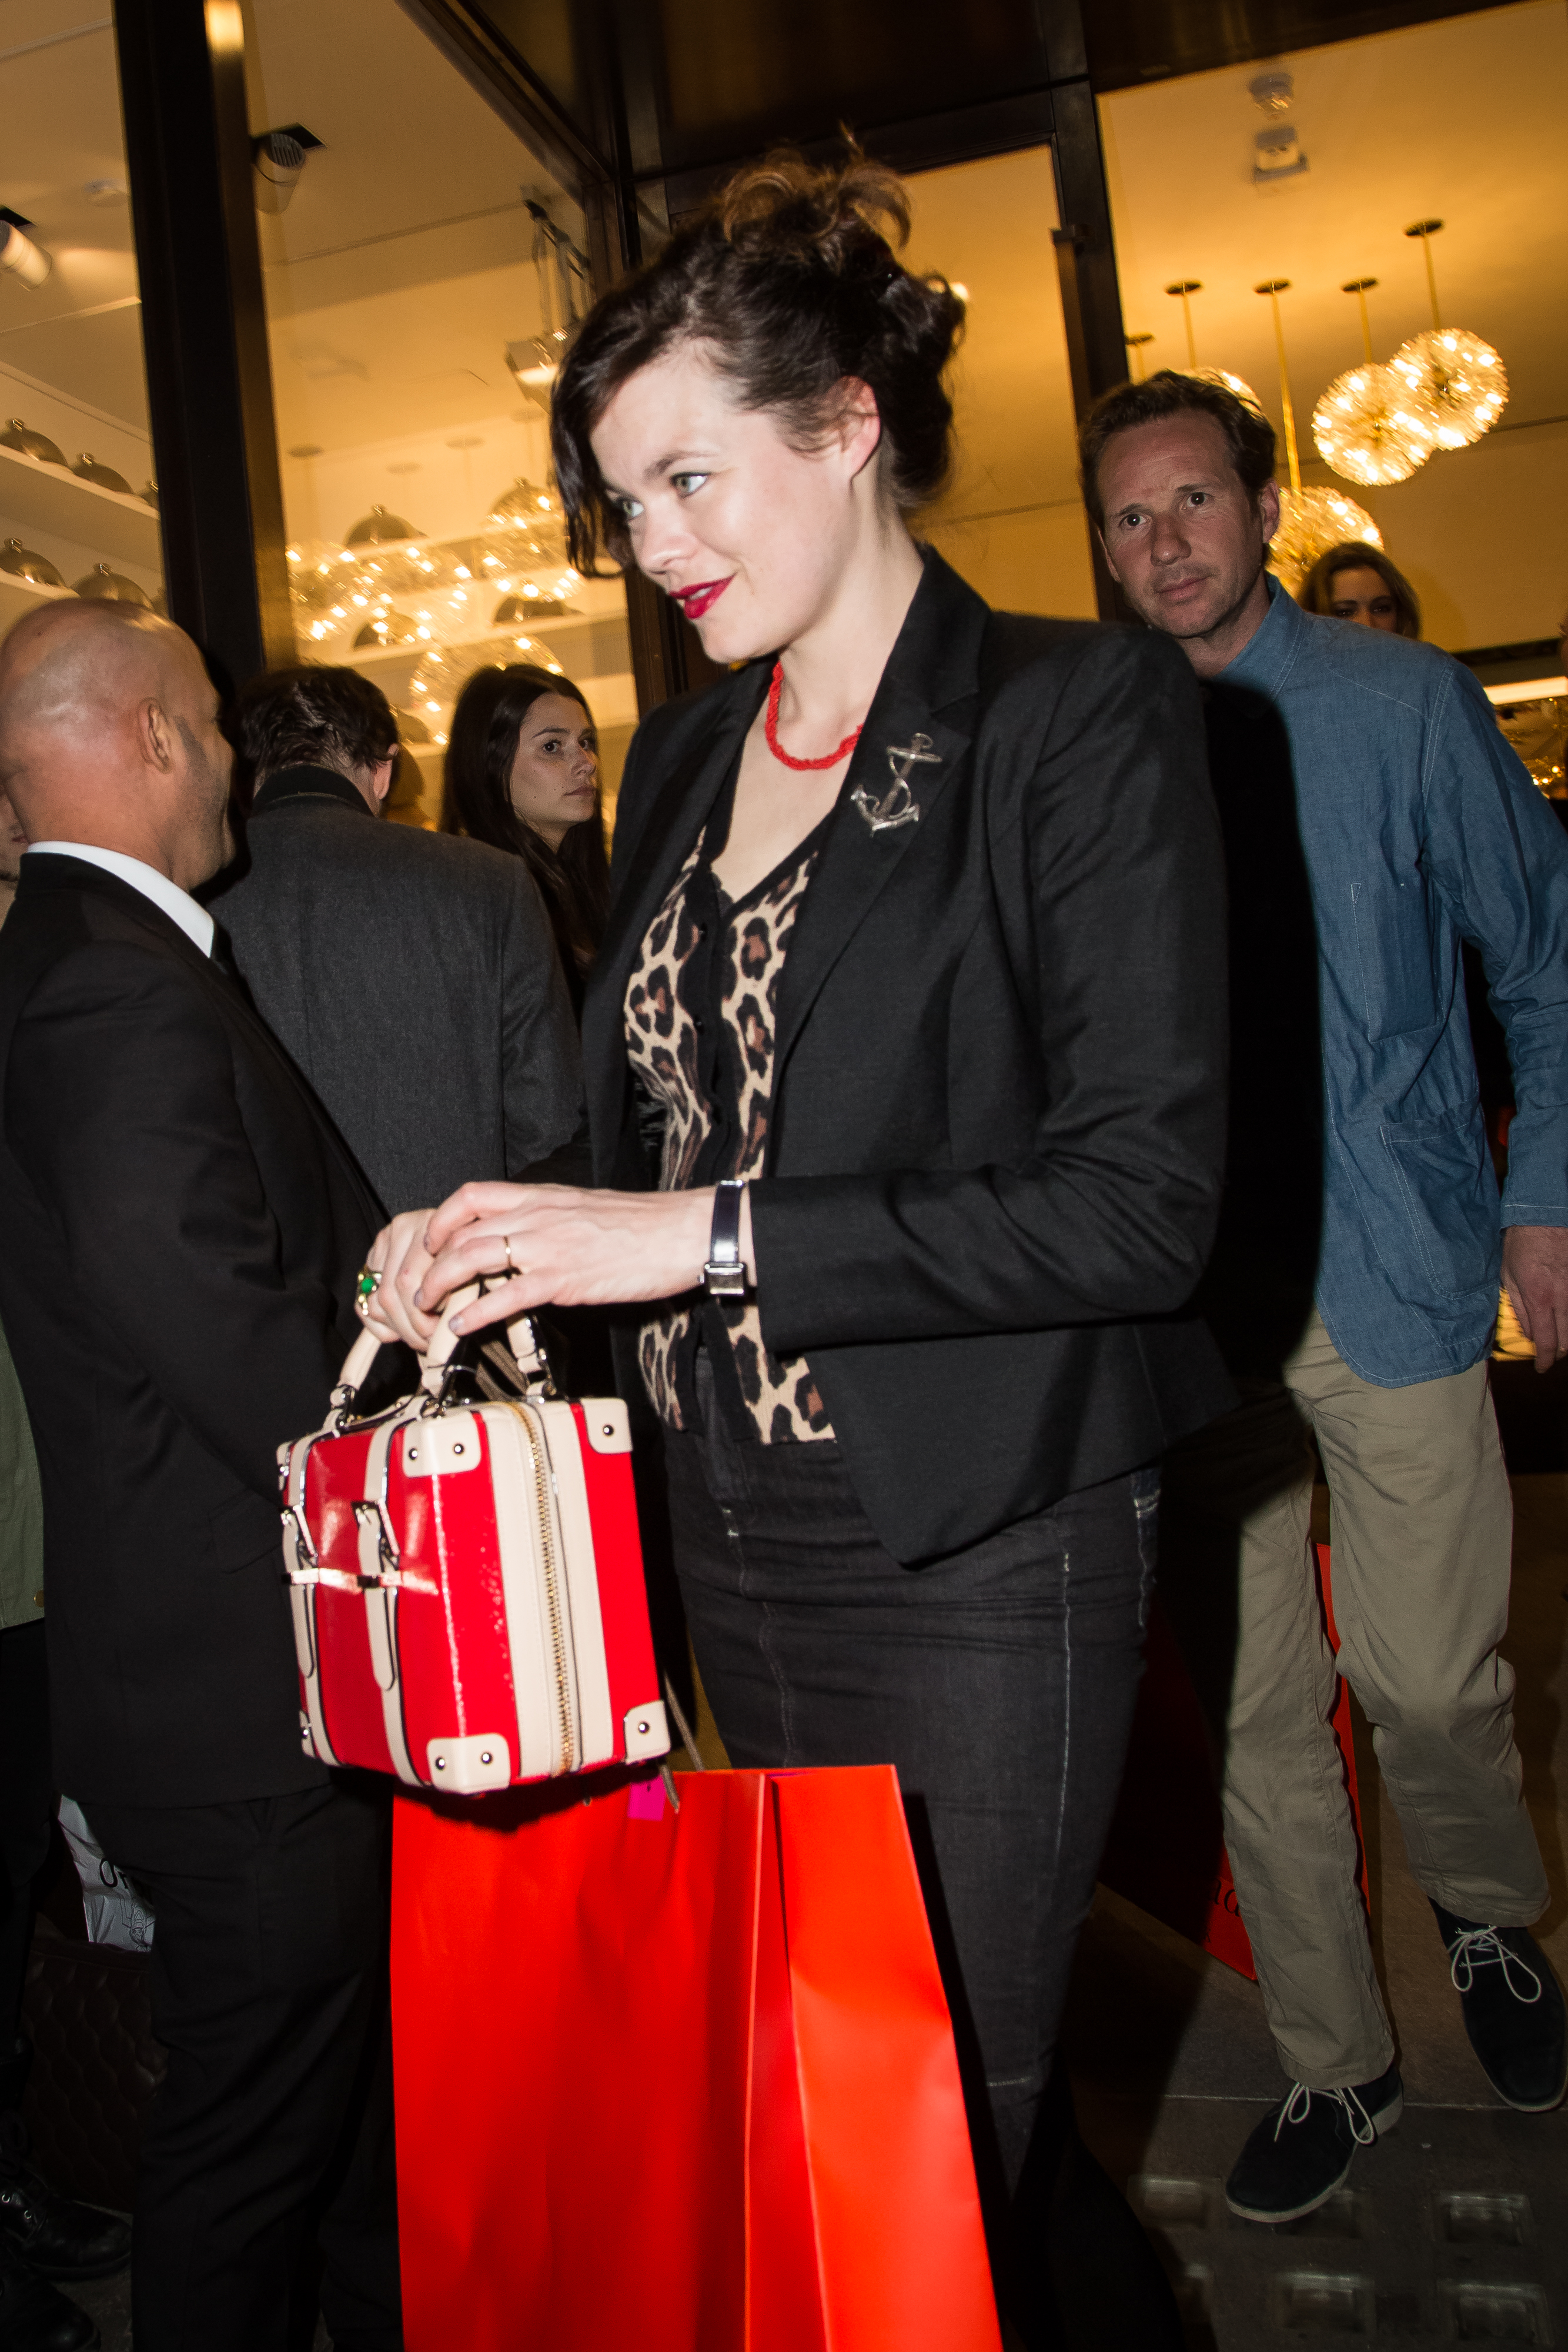 <div class='meta'><div class='origin-logo' data-origin='AP'></div><span class='caption-text' data-credit='Vianney Le Caer/Invision/AP'>Jasmine Guinness leaves the Kate Spade New York flagship store opening party in London, Thursday, April 21, 2016. (Photo by Vianney Le Caer/Invision/AP)</span></div>